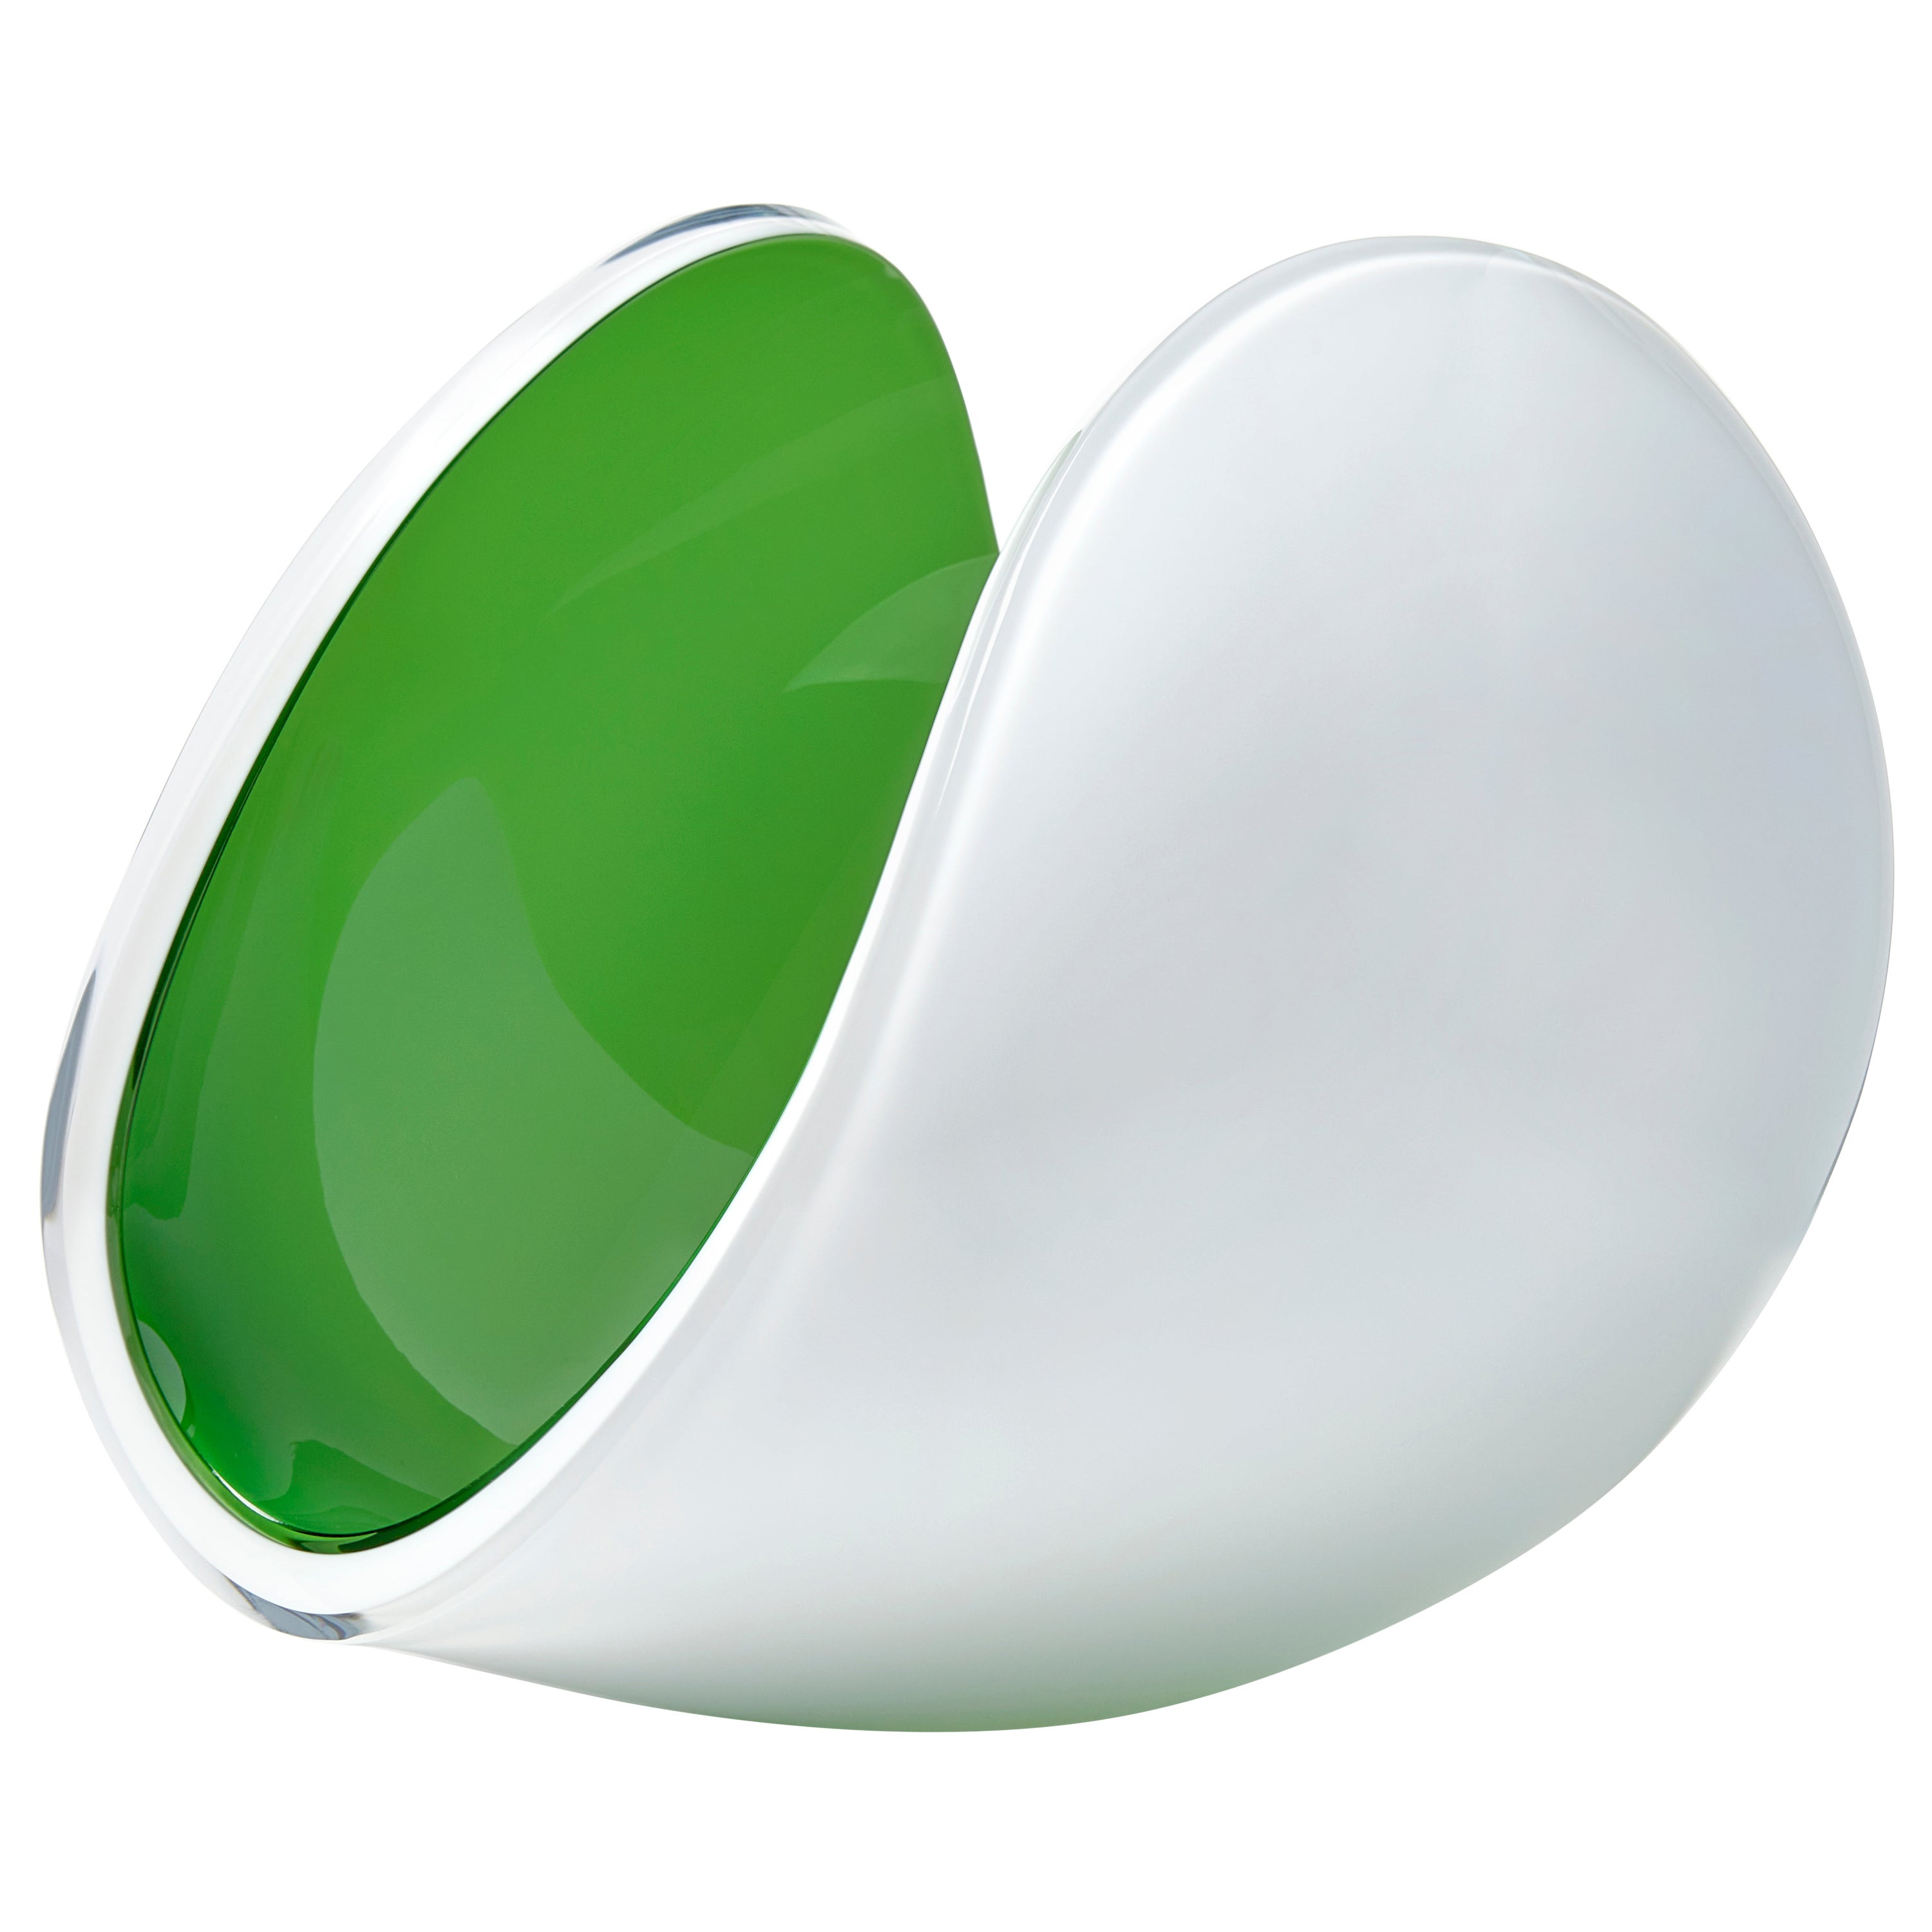 Planet in White and Apple Green, a Unique Art Glass Sculpture by Lena Bergström